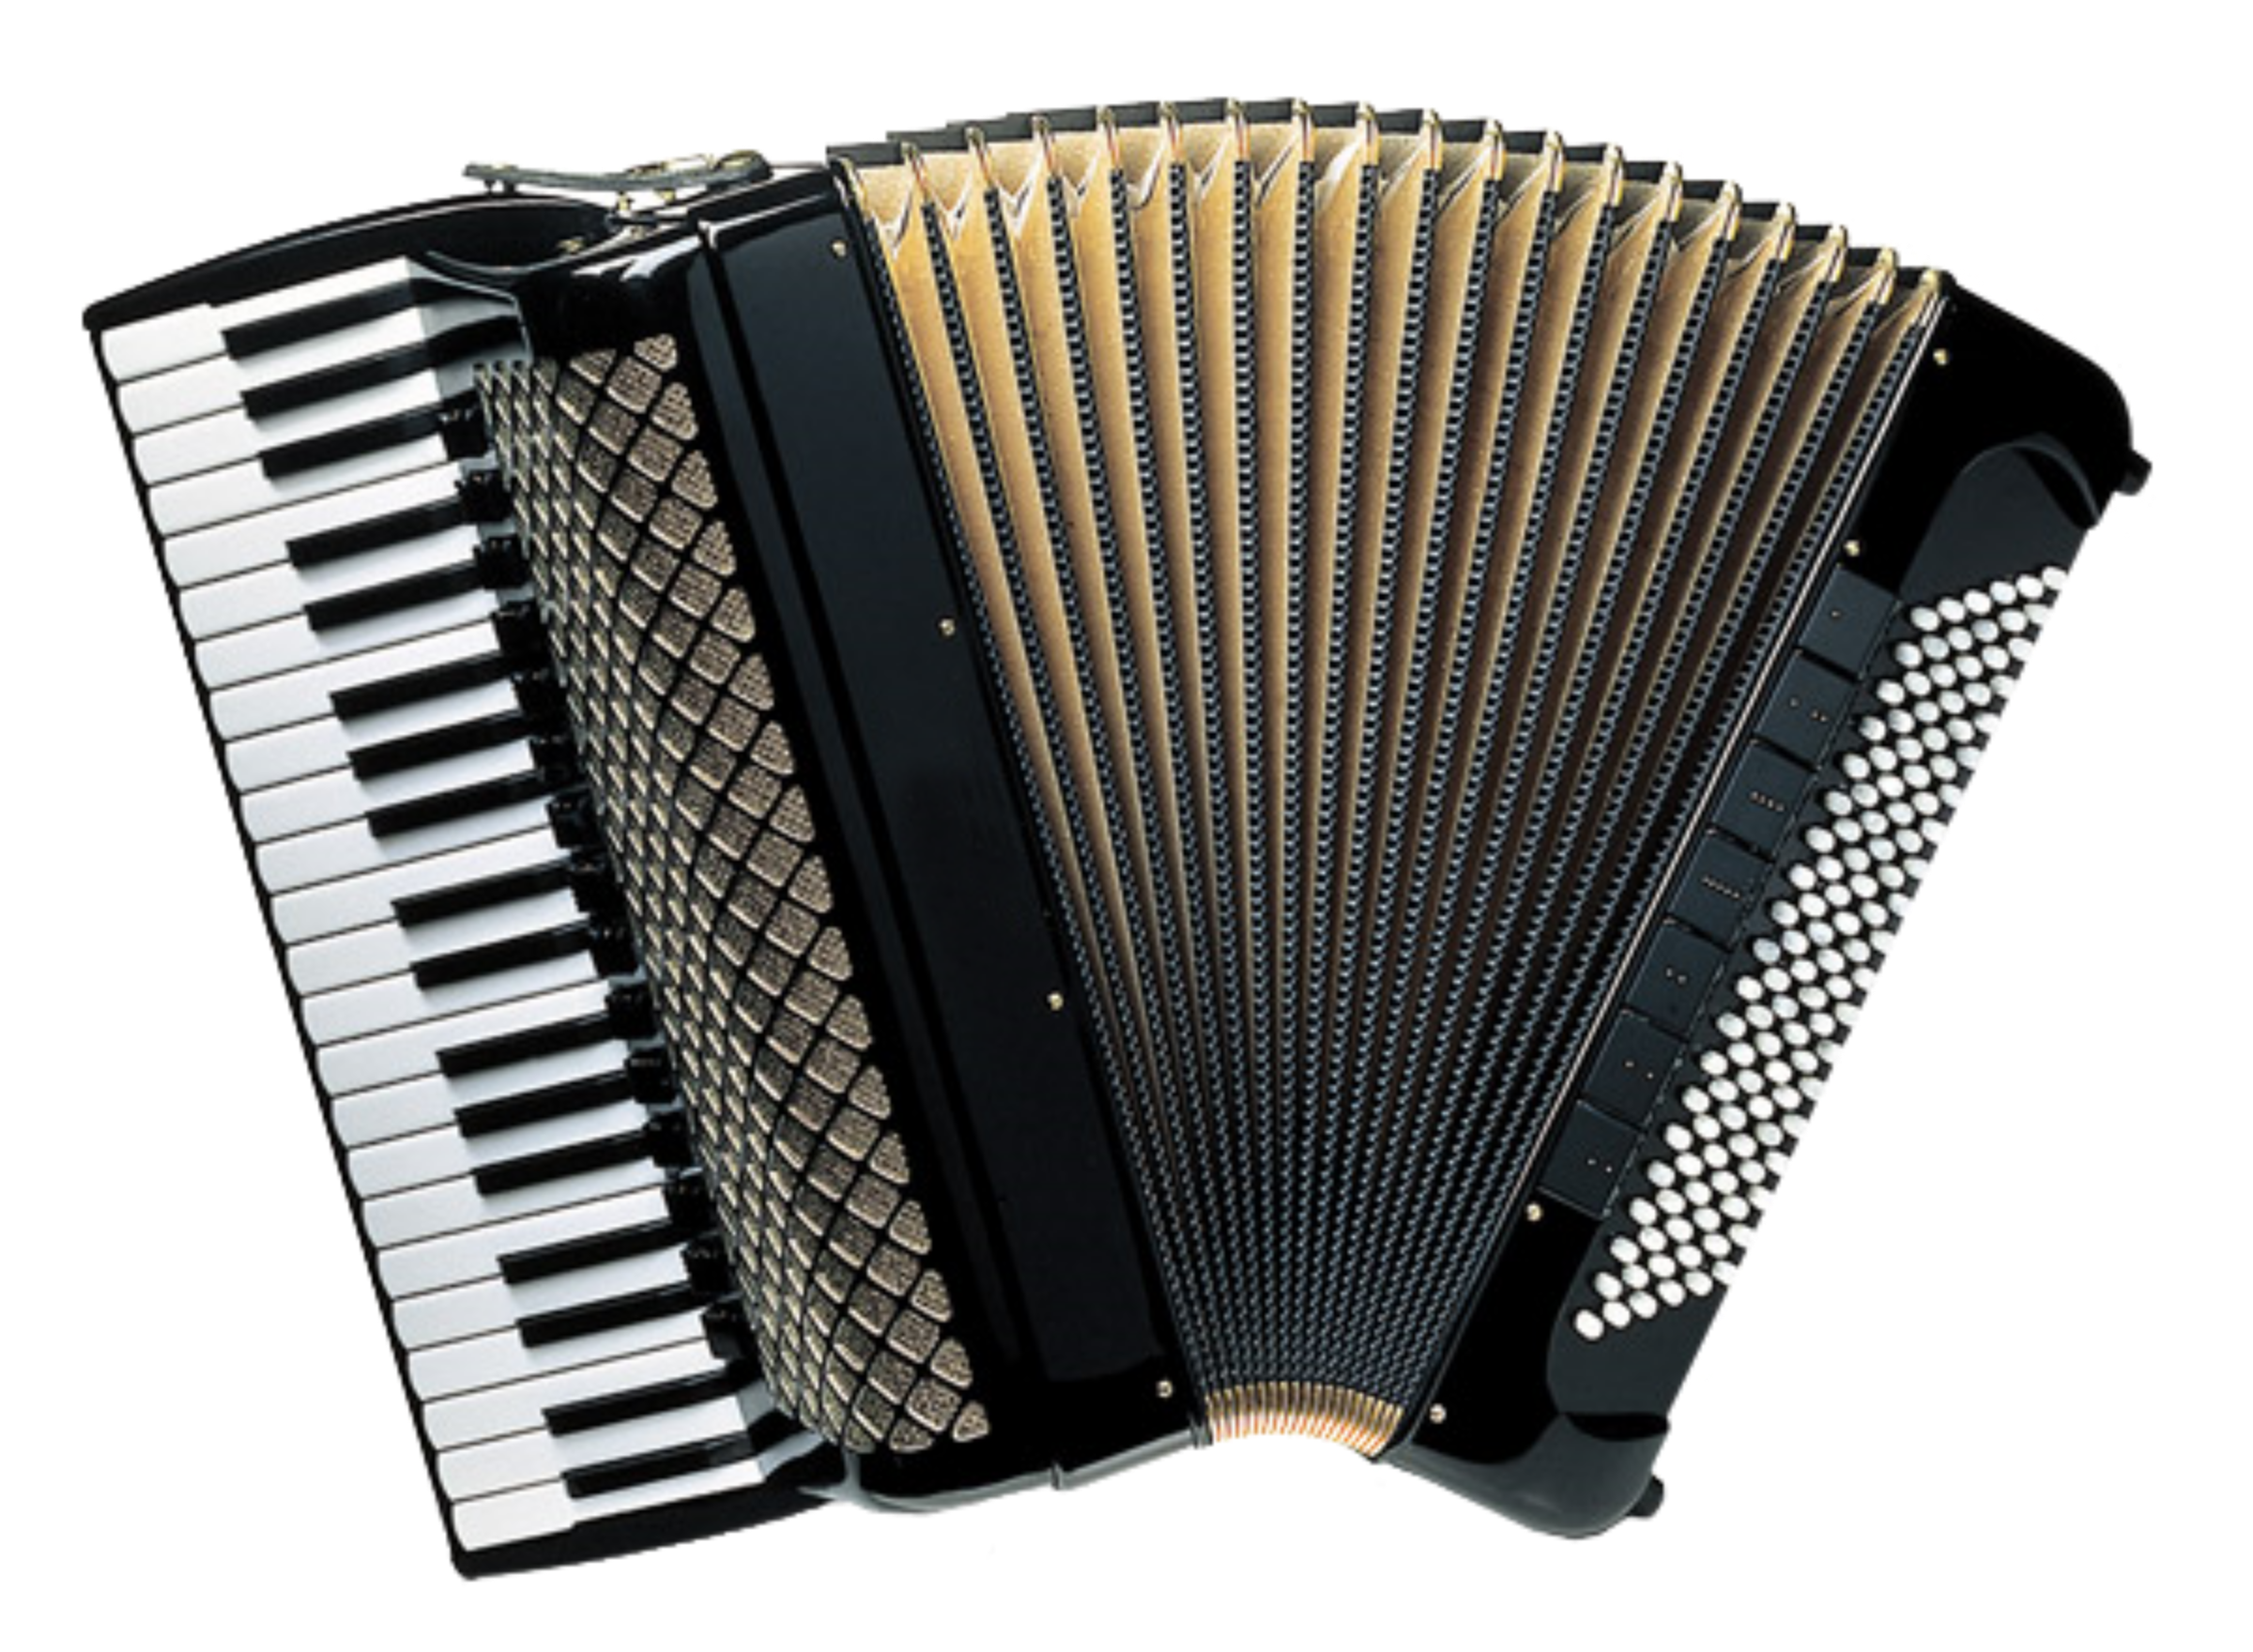 Piano Accordion Vector Clipart image.